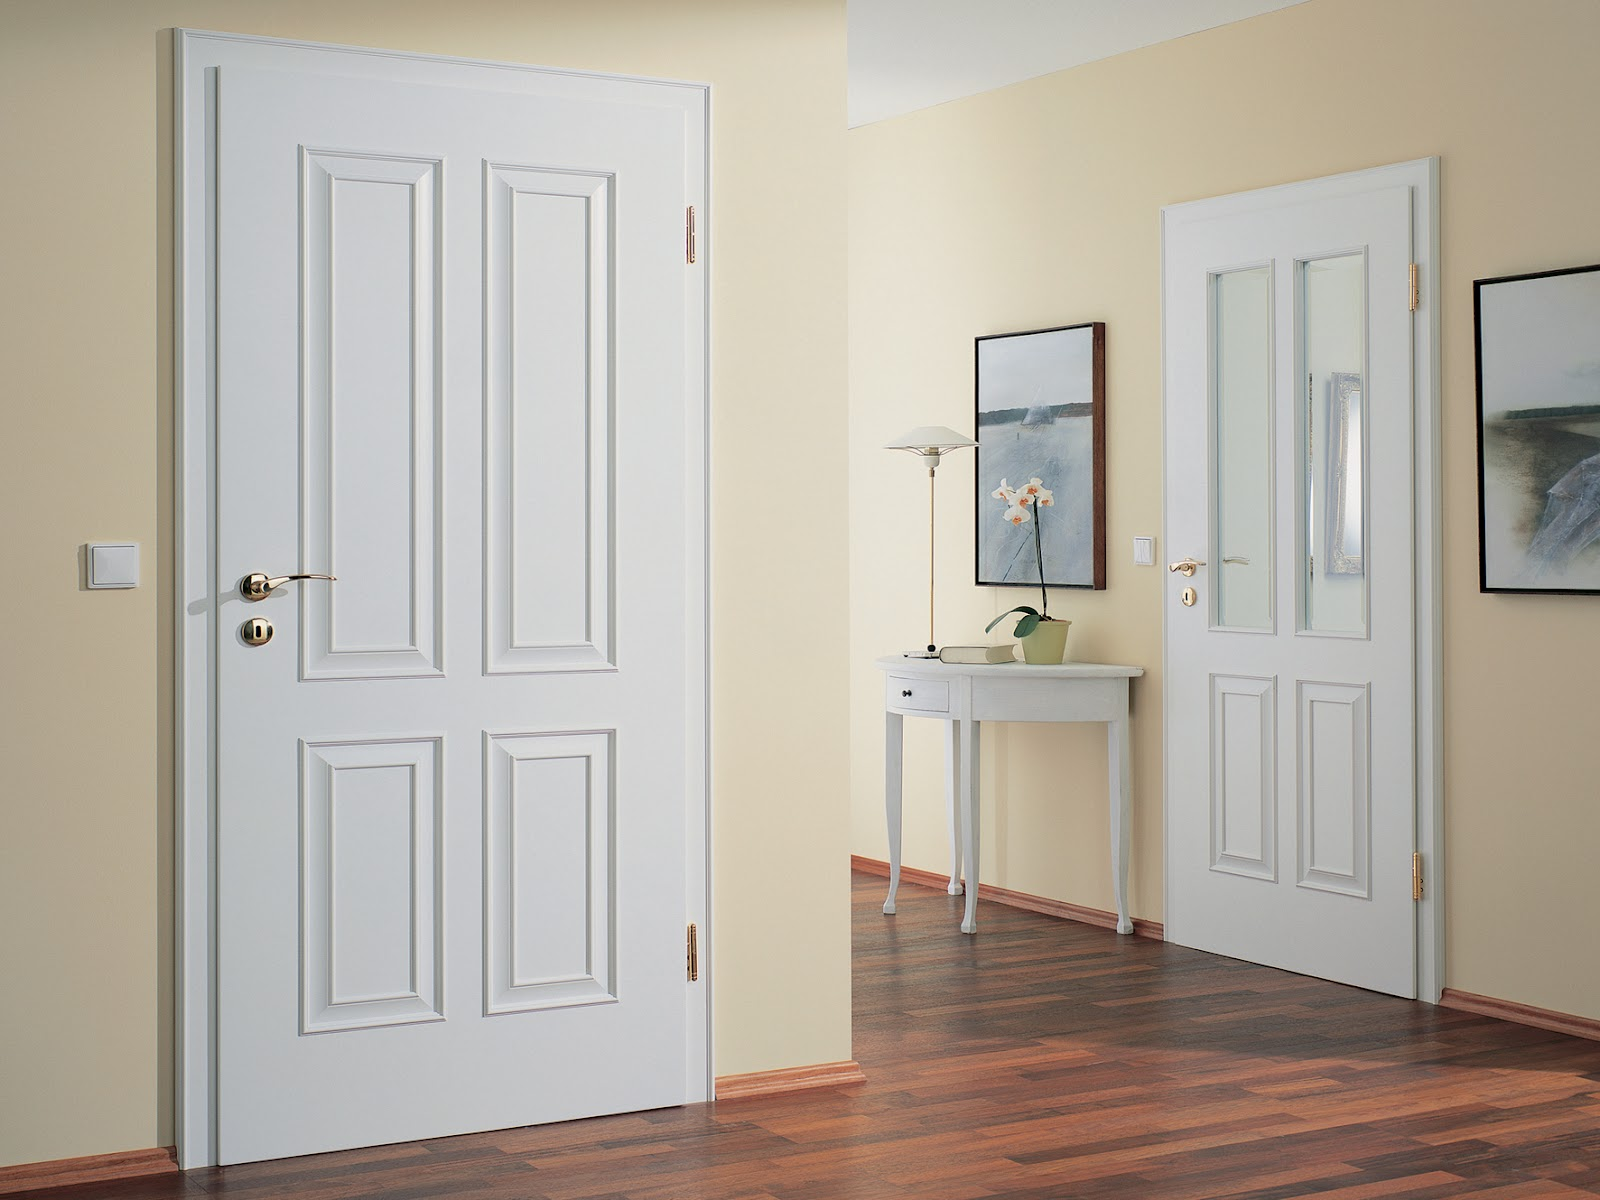 Elegant Solid Wood Doors White Are Most Frequently Ordered Internal Doors